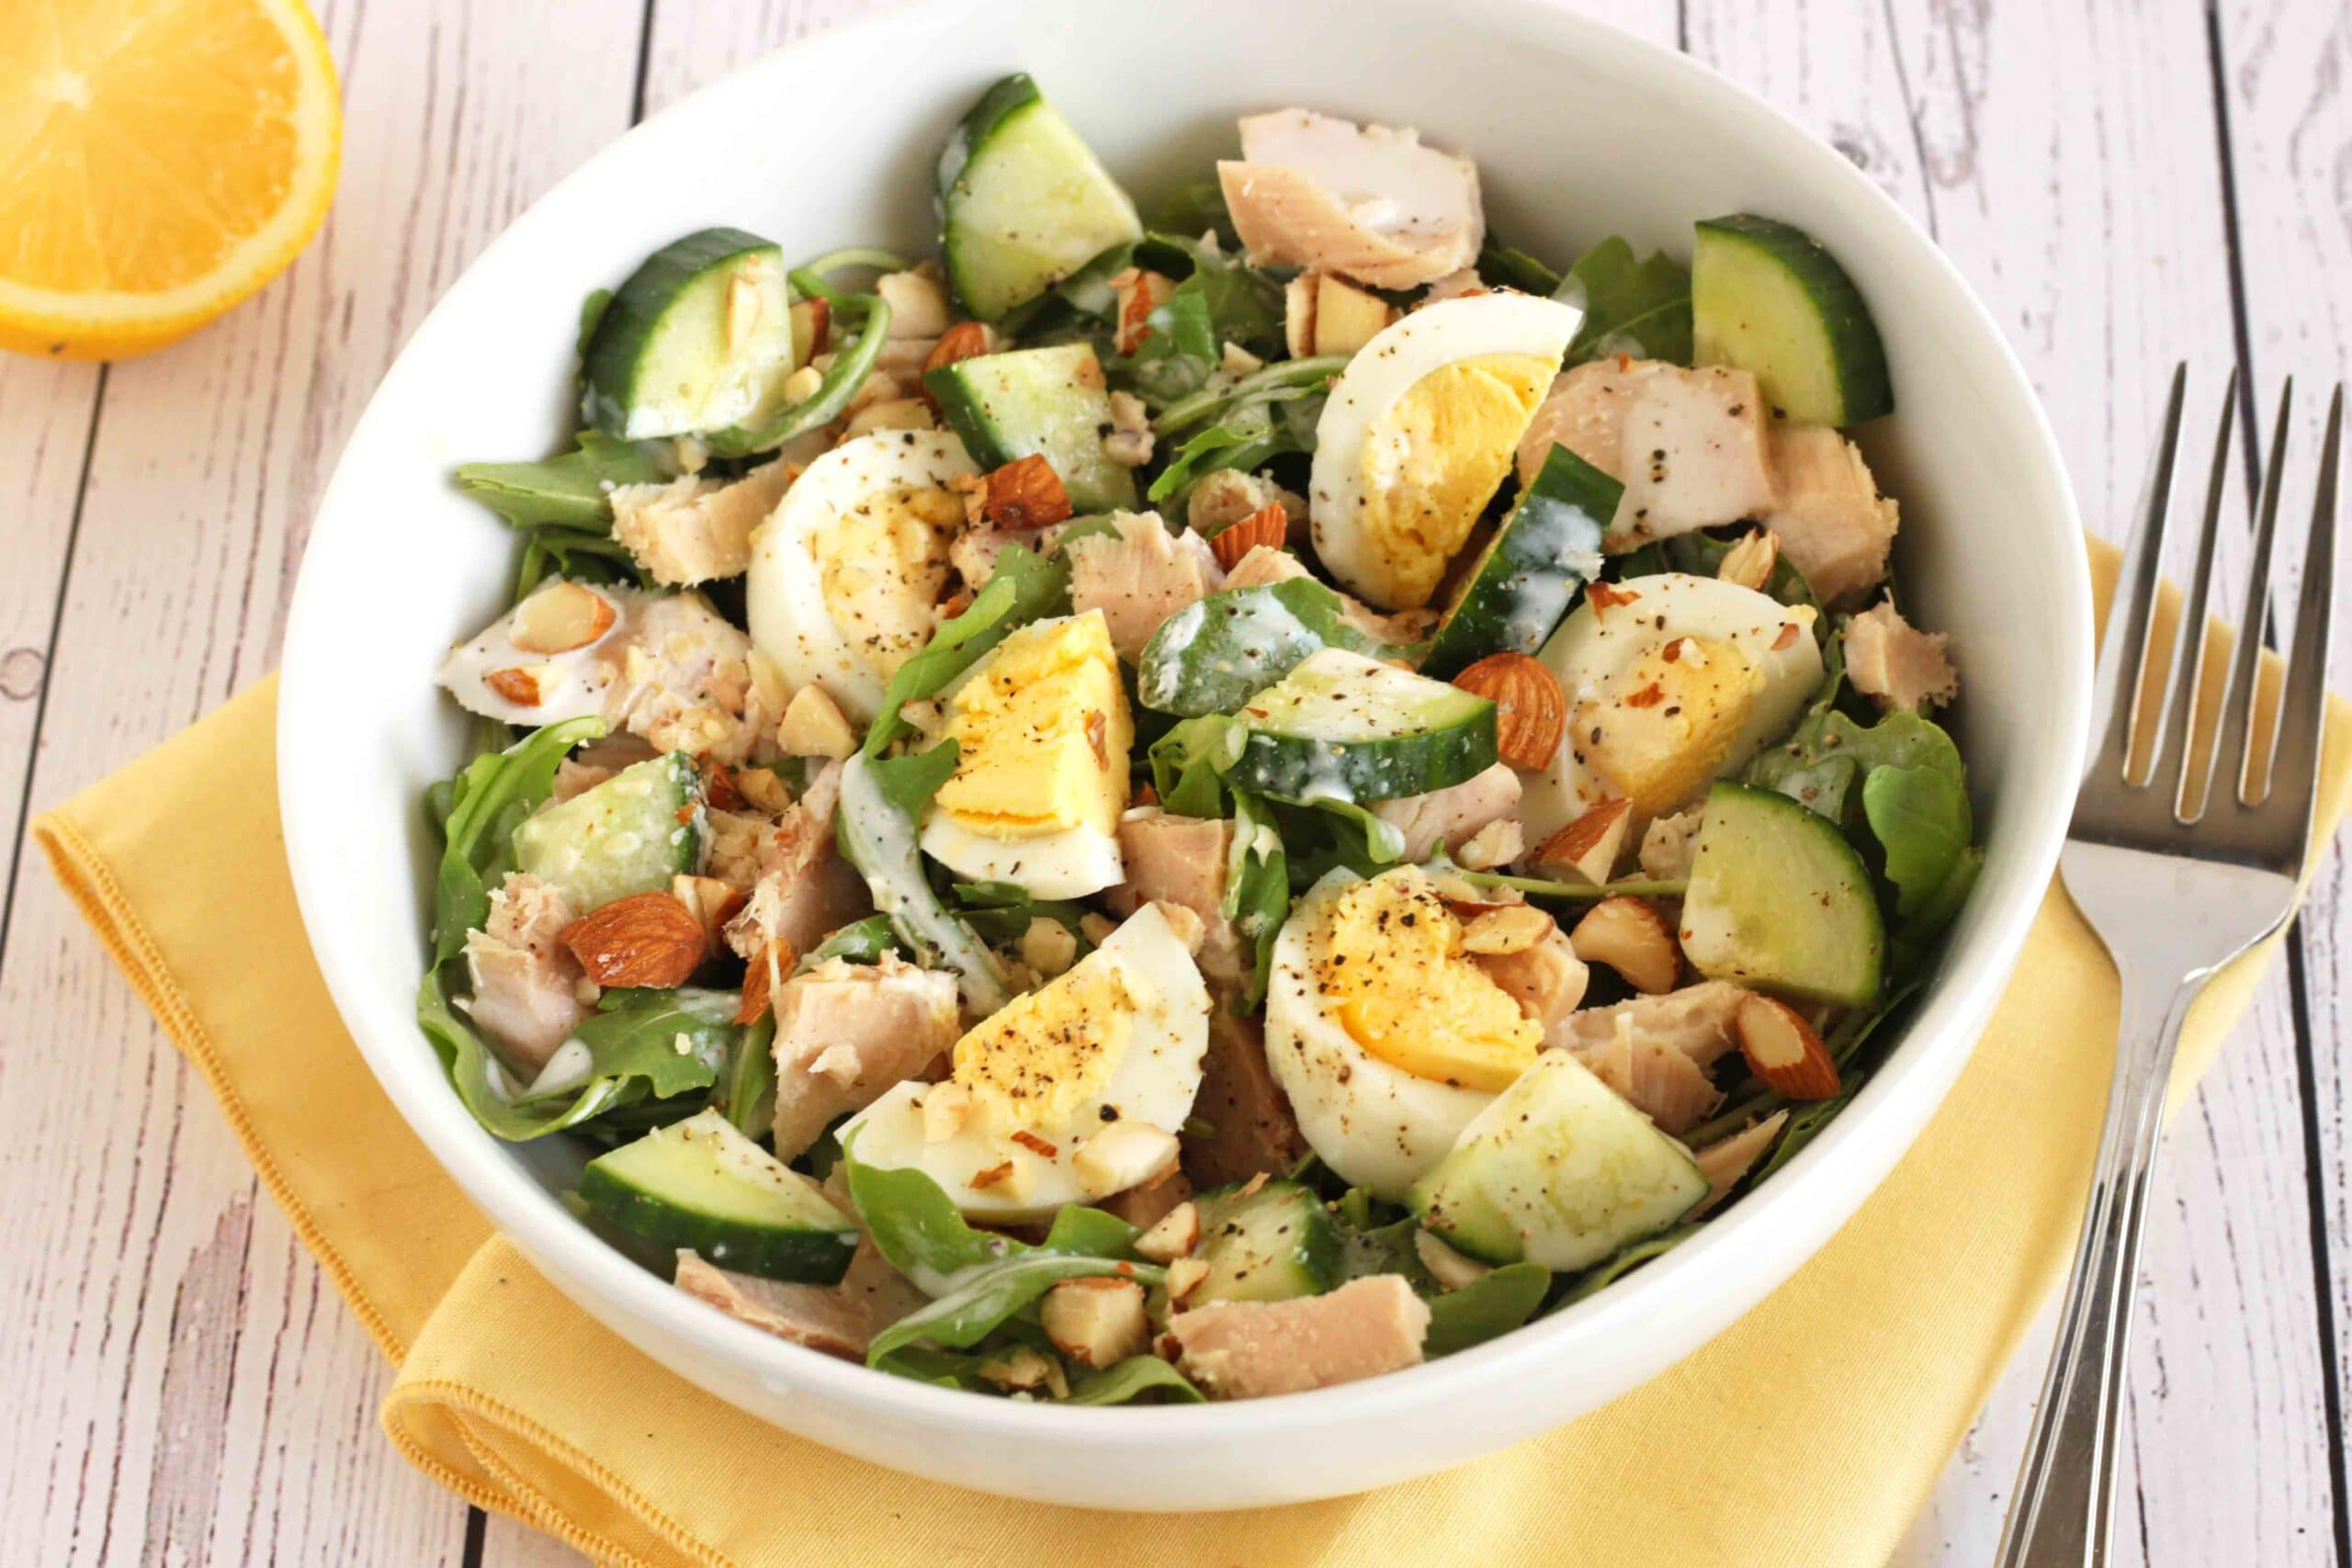 Egg and Tuna Protein-packed Salad by @jesselwellness